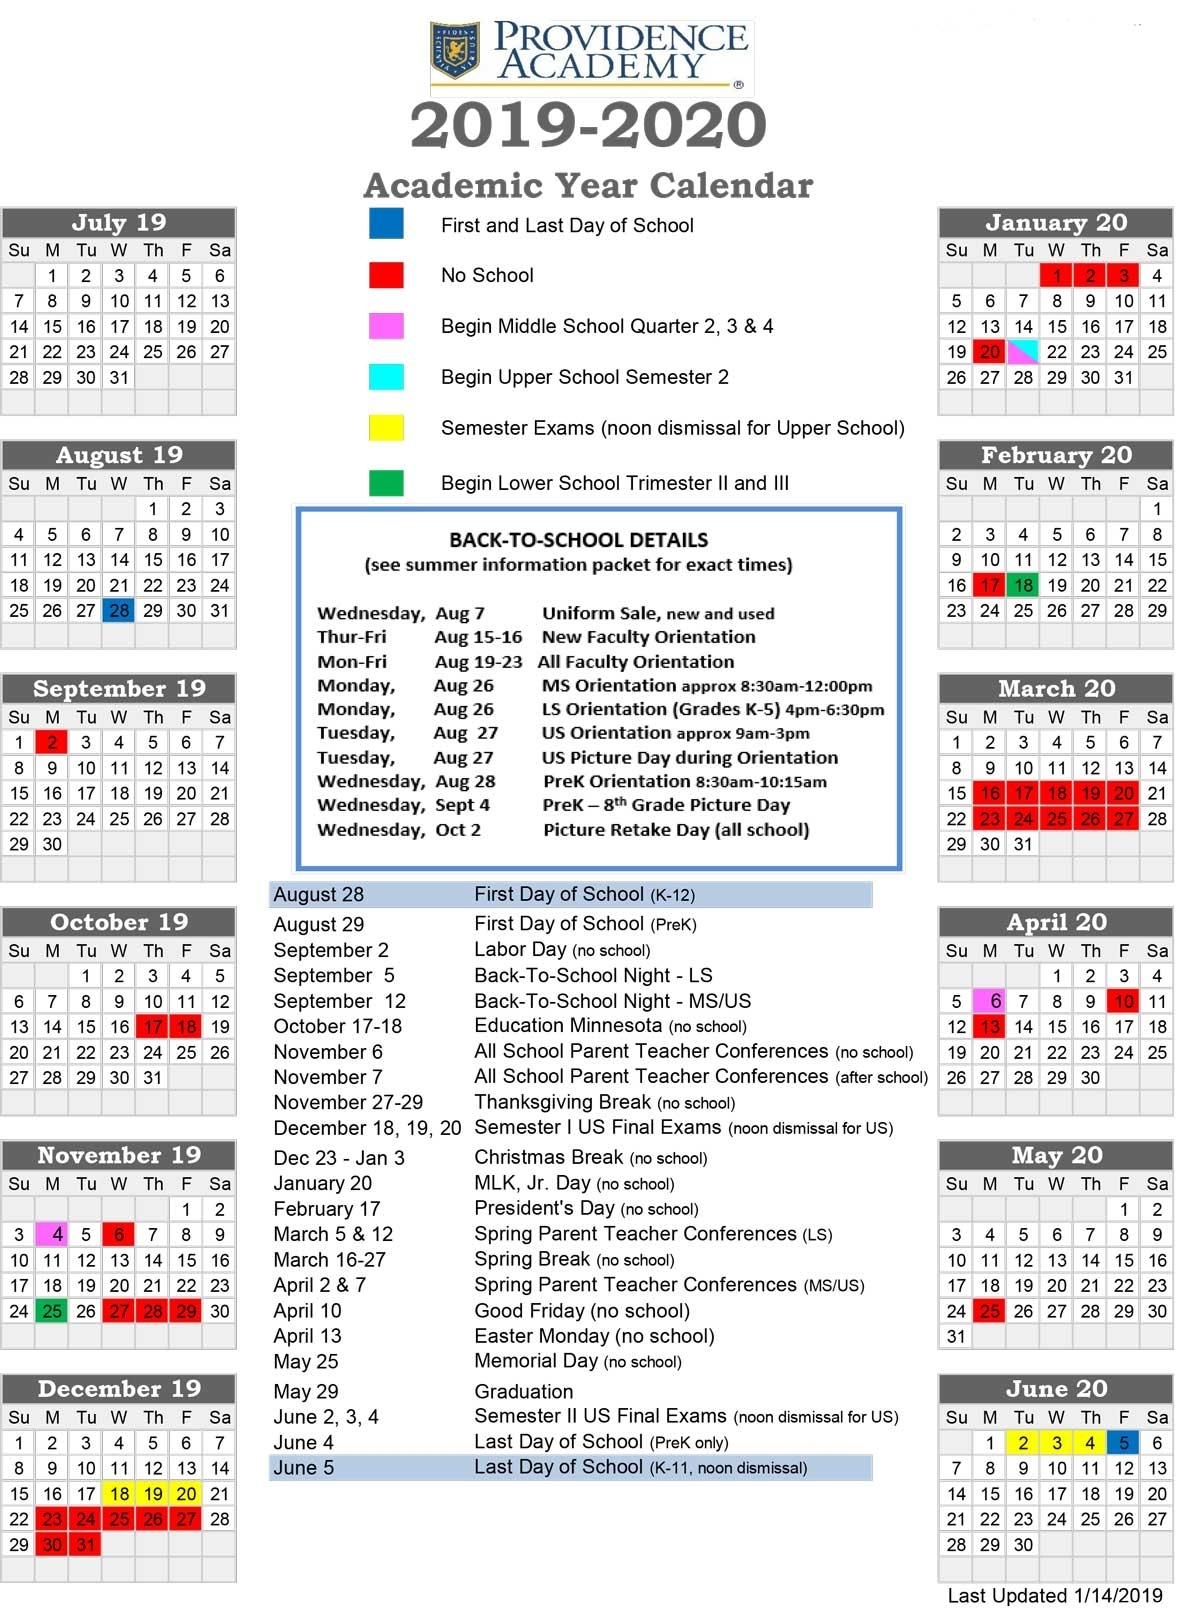 Academic Calendar - Providence Academy within U Of M School Year 2019-2020